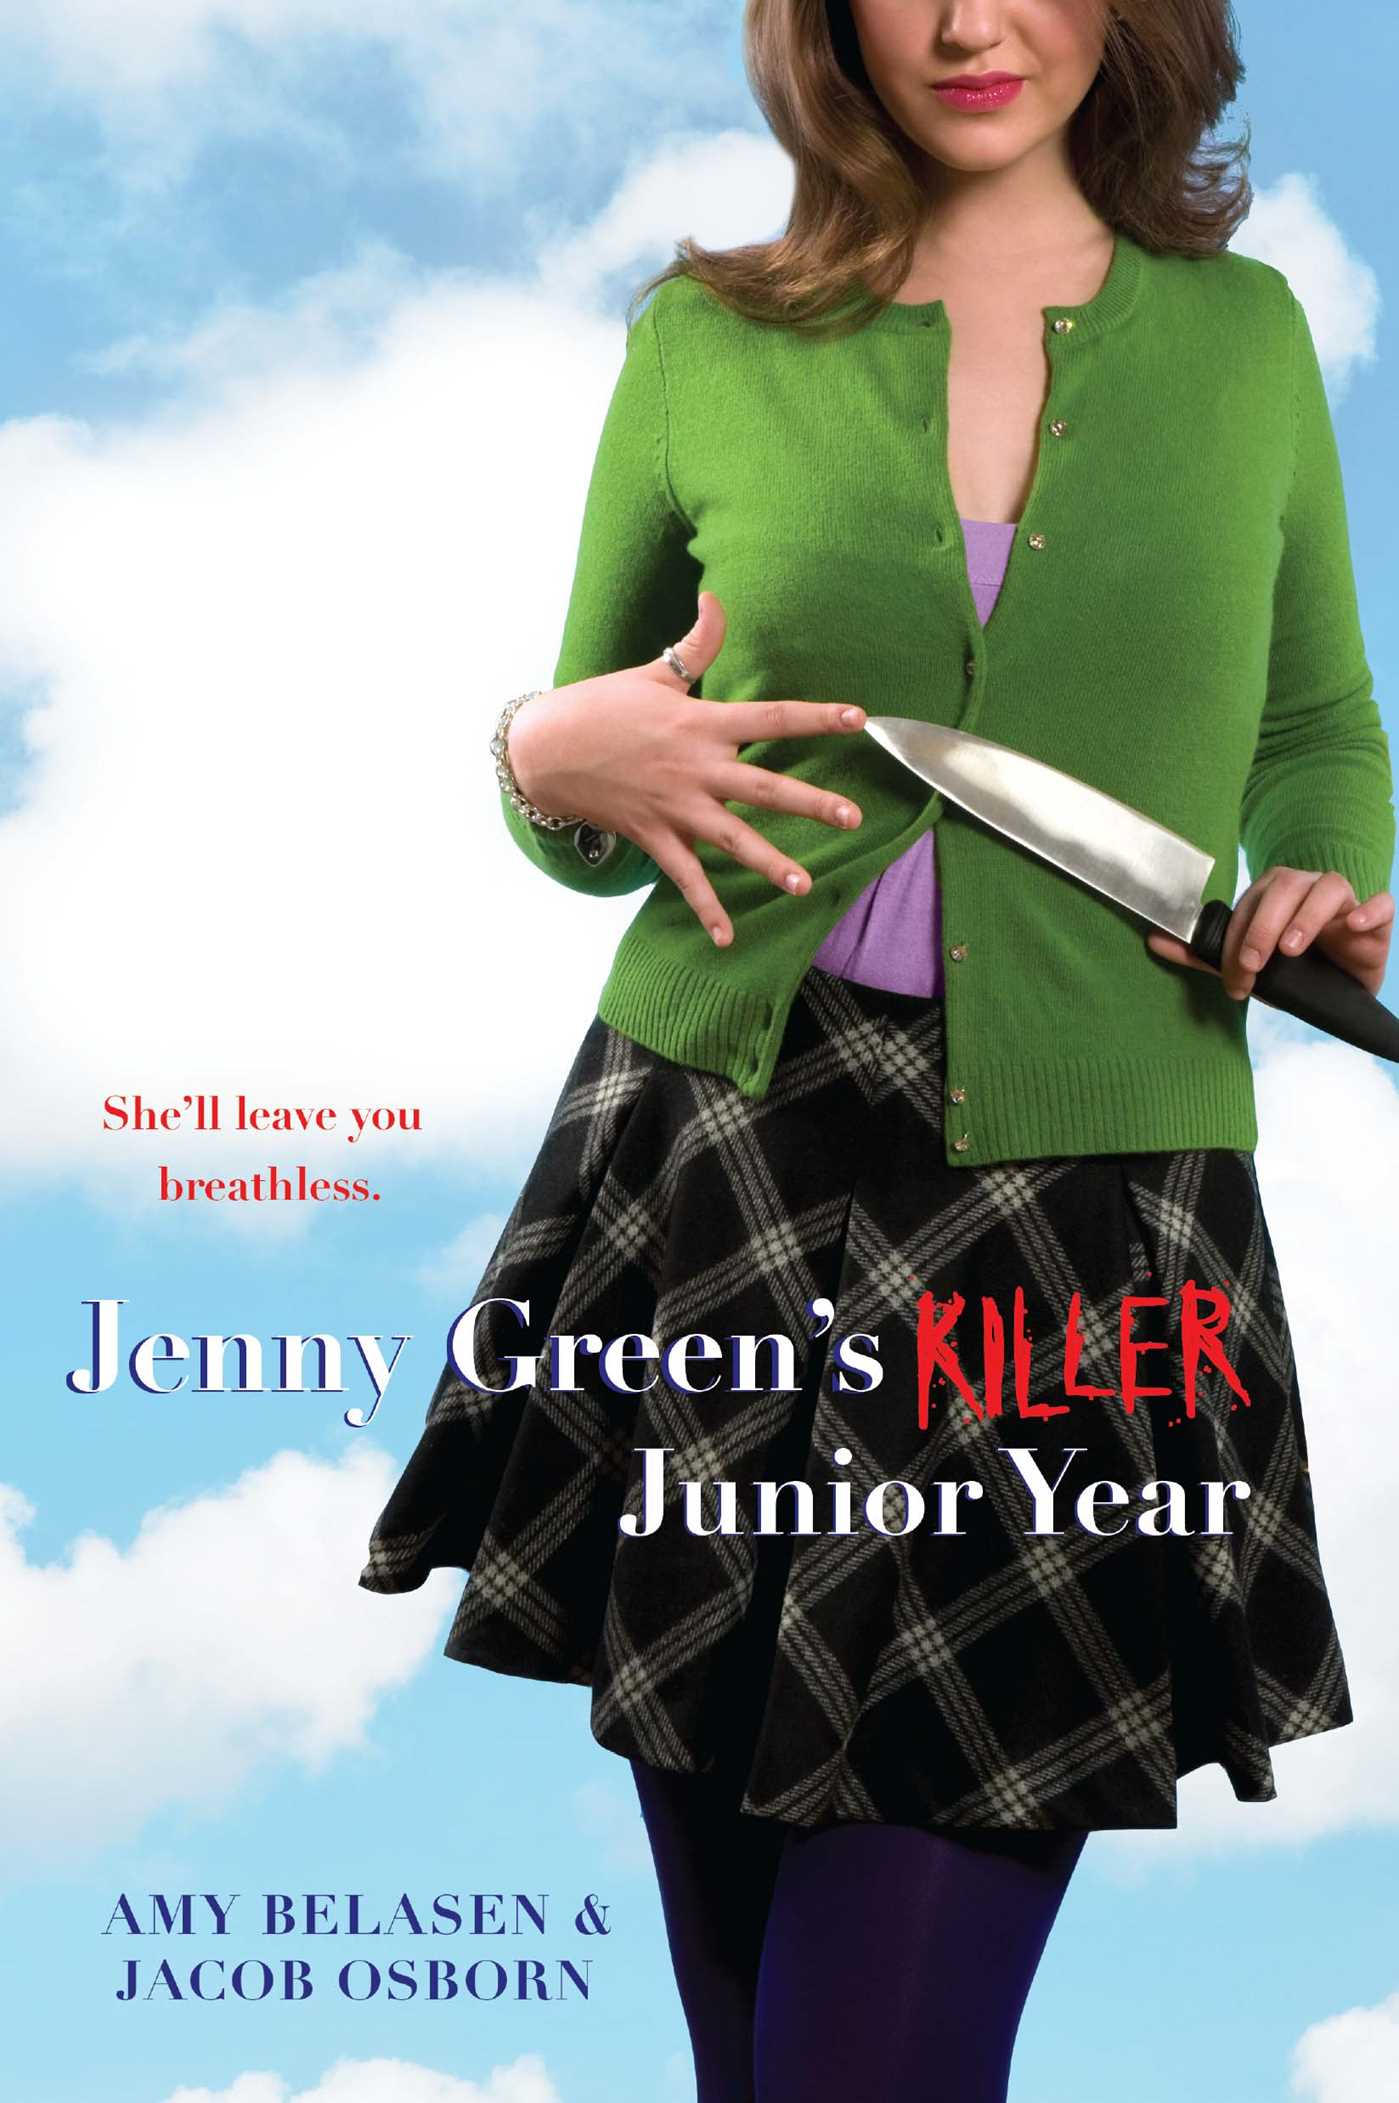 Jenny-greens-killer-junior-year-9781416967927_hr